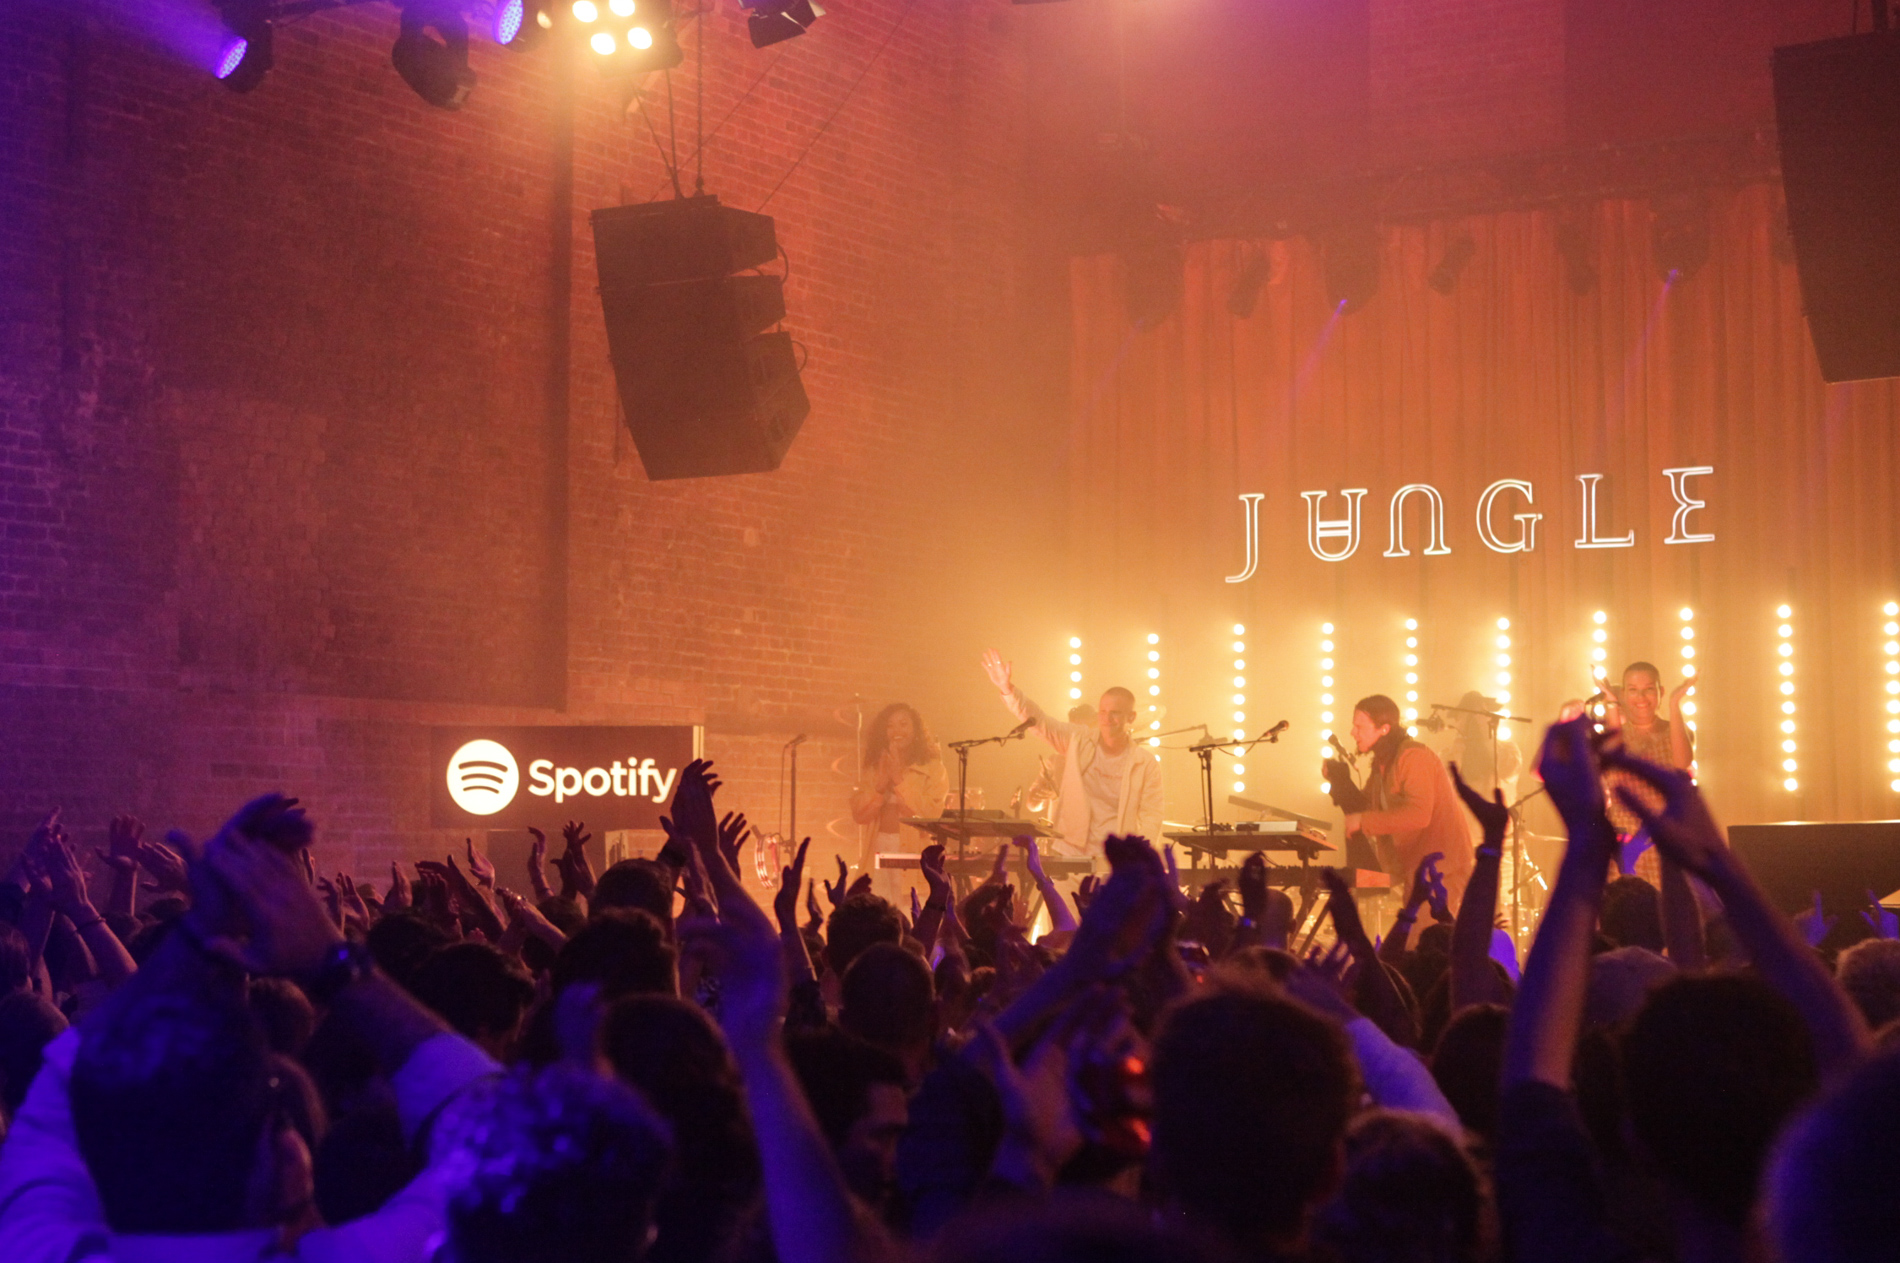 Spotify album launch for Jungle